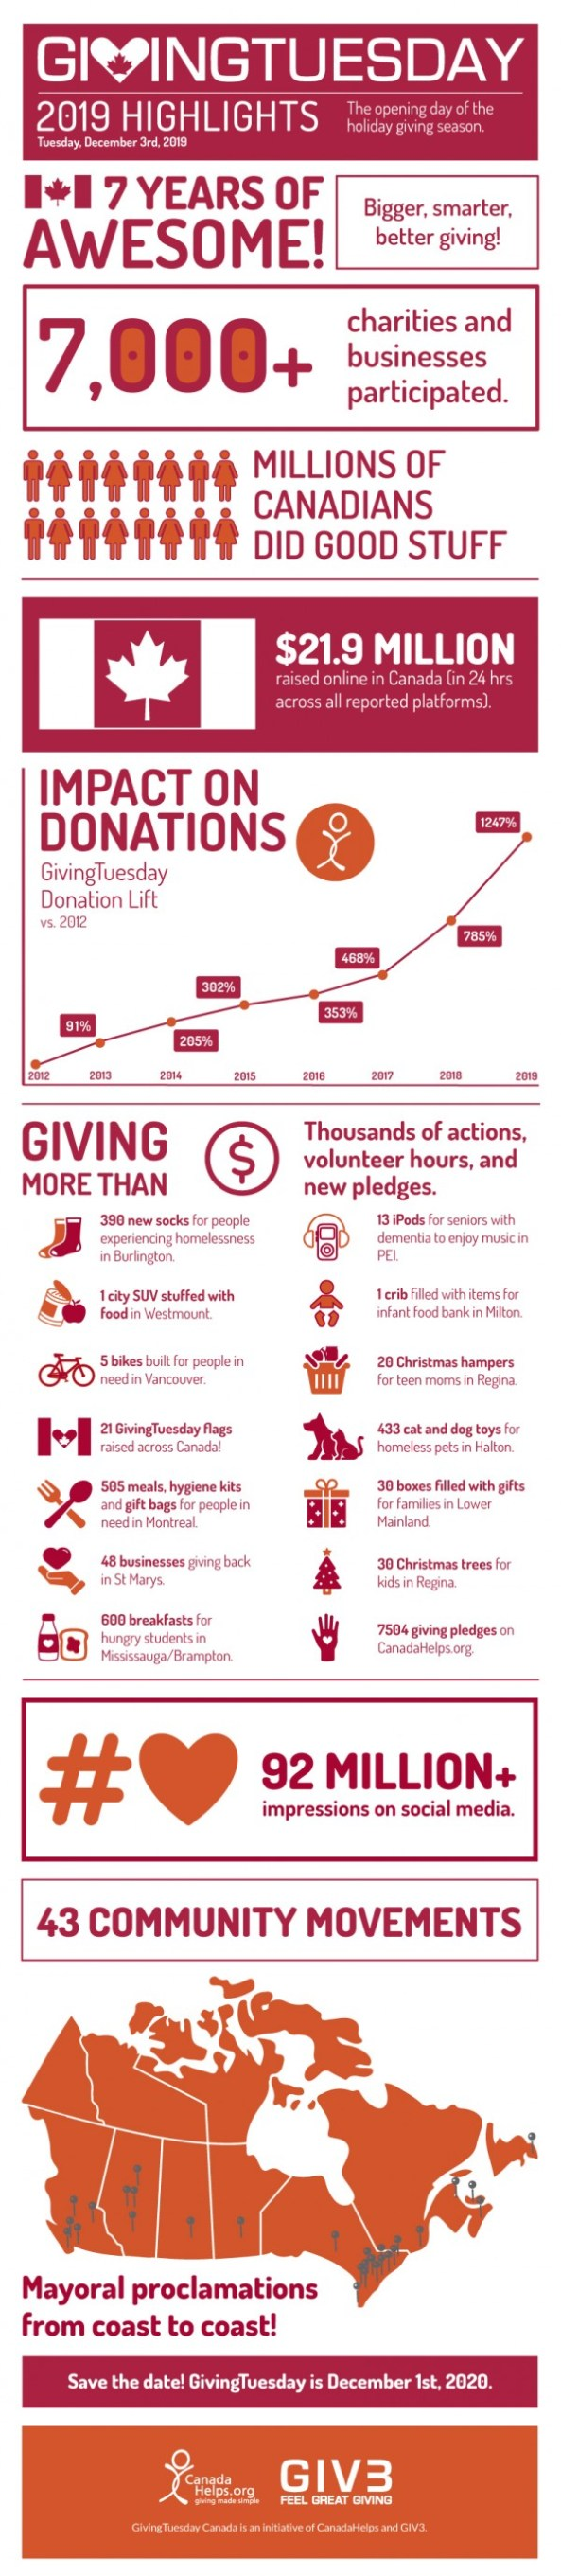 Infographic on Giving Tuesday, 2019 Highlights.